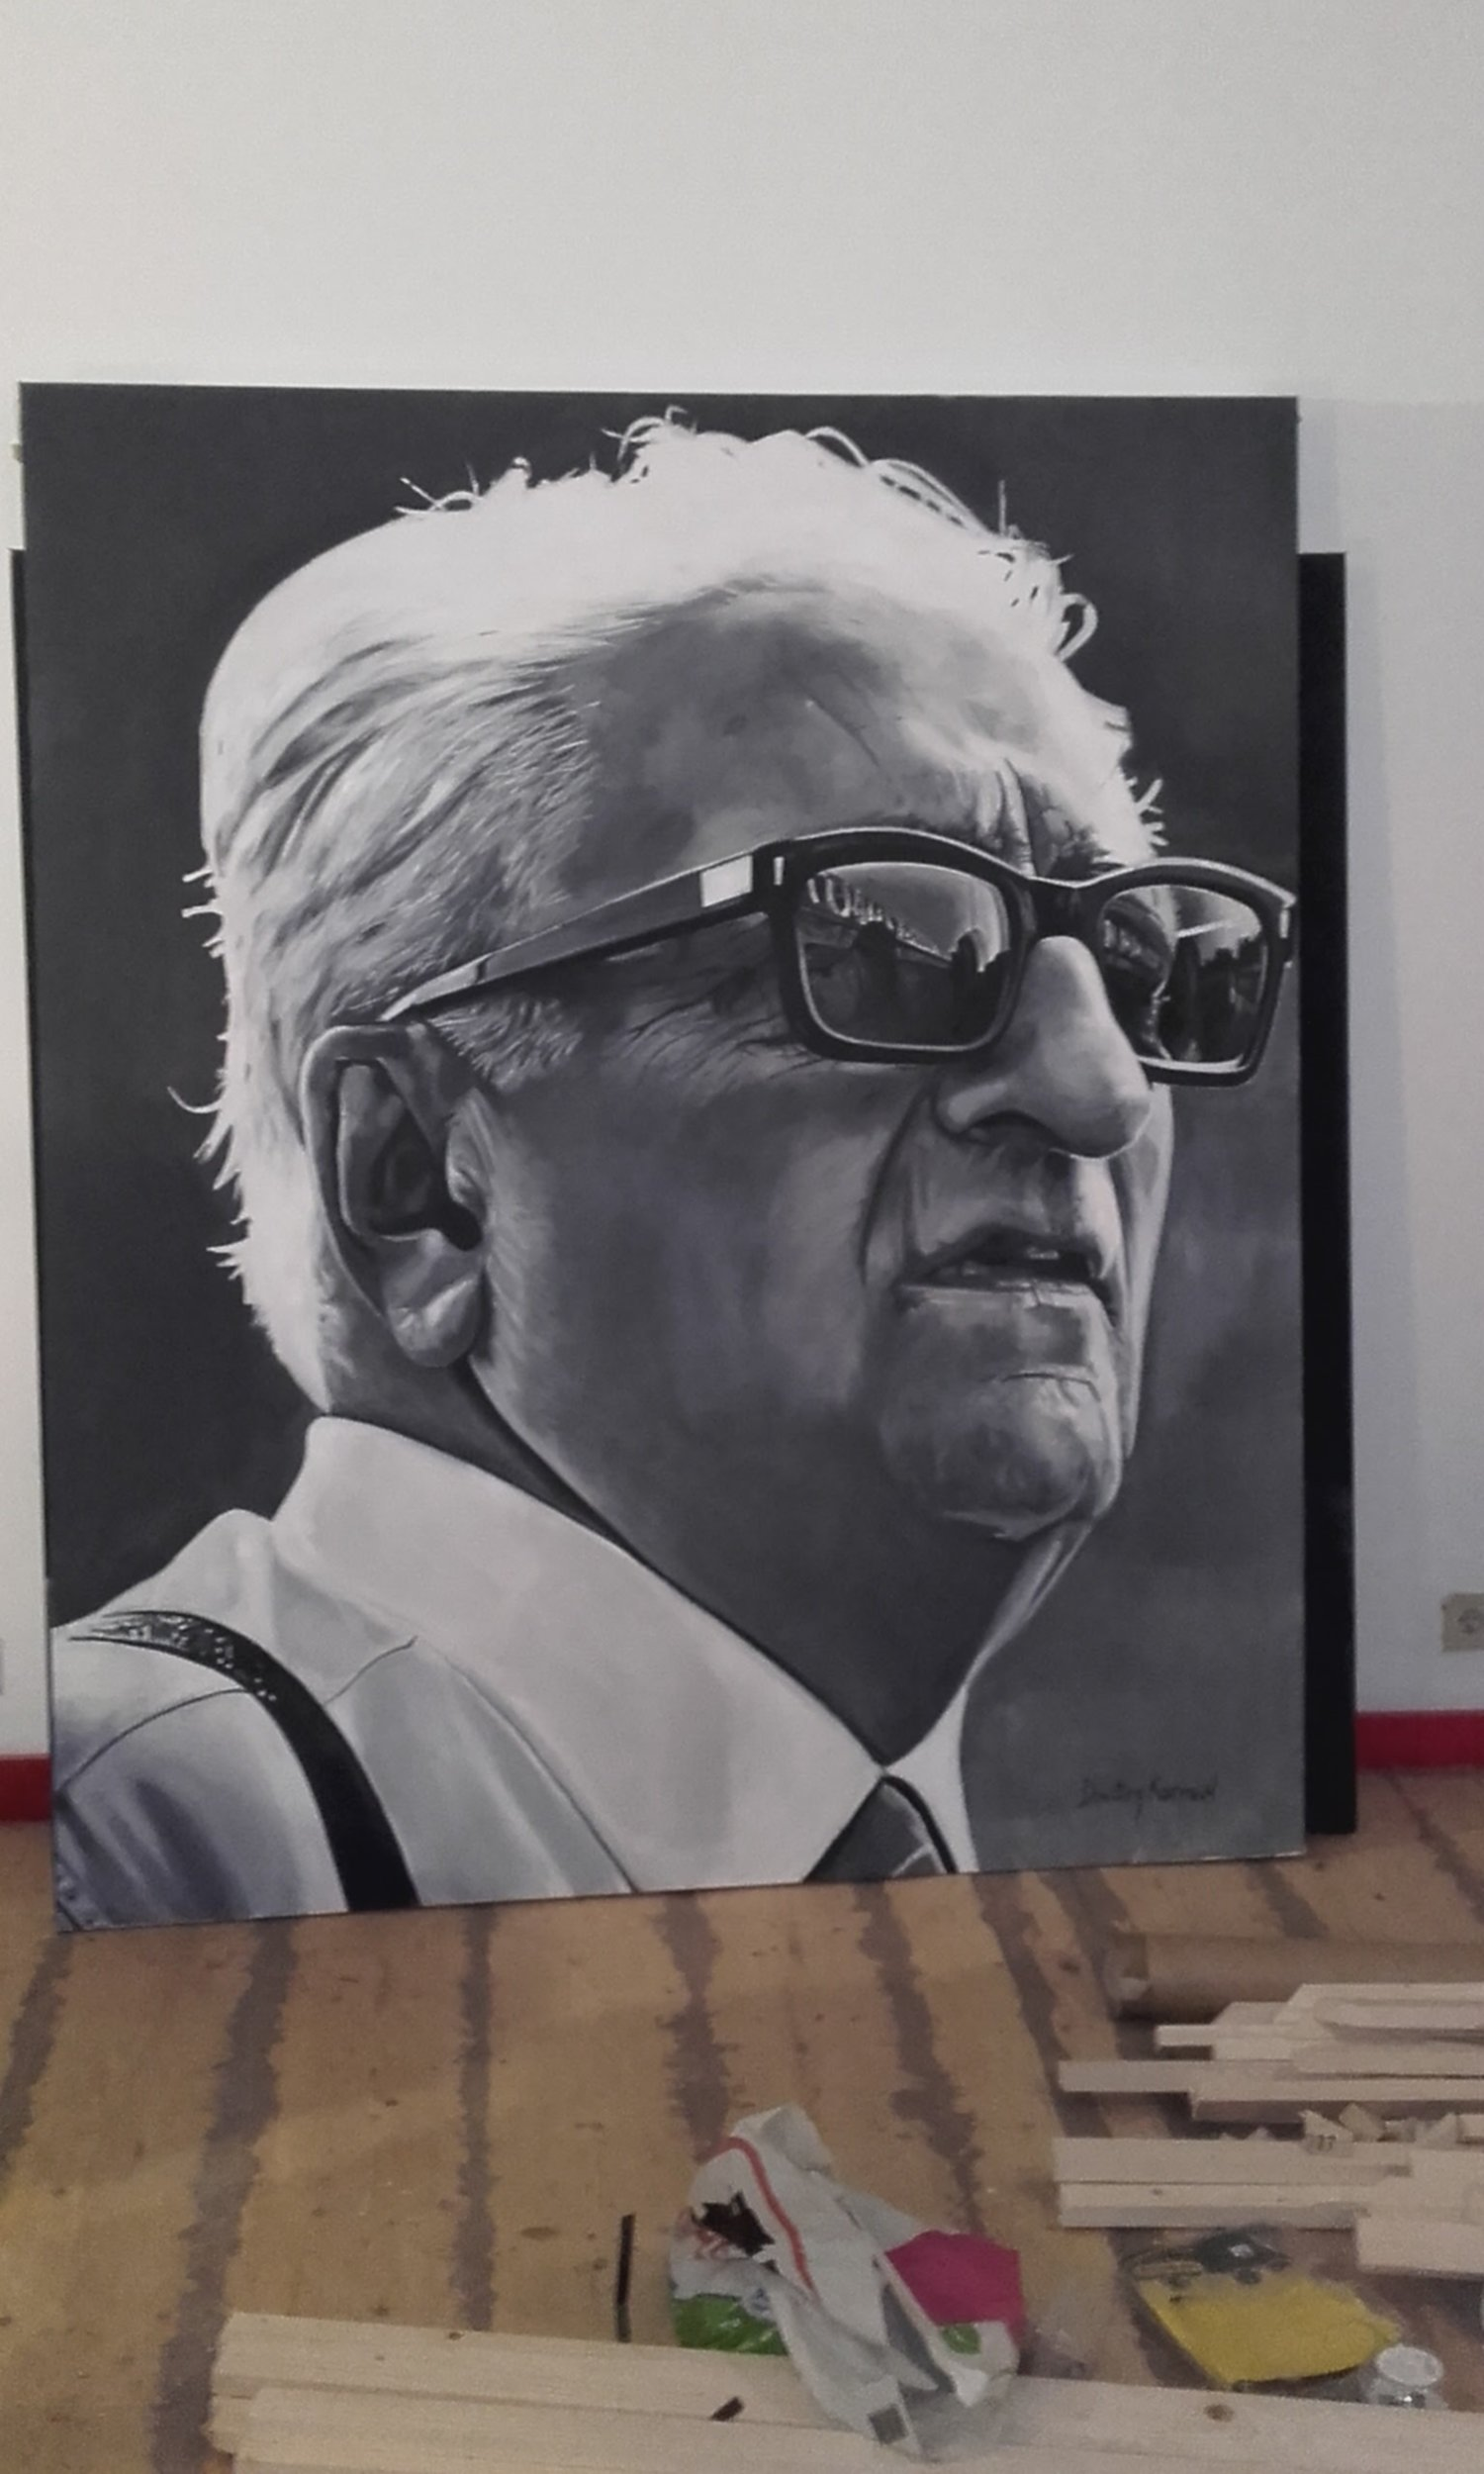 Portrait of Enzo Ferrari painted for the restaurant I Migliori, Antwerp, Belgium